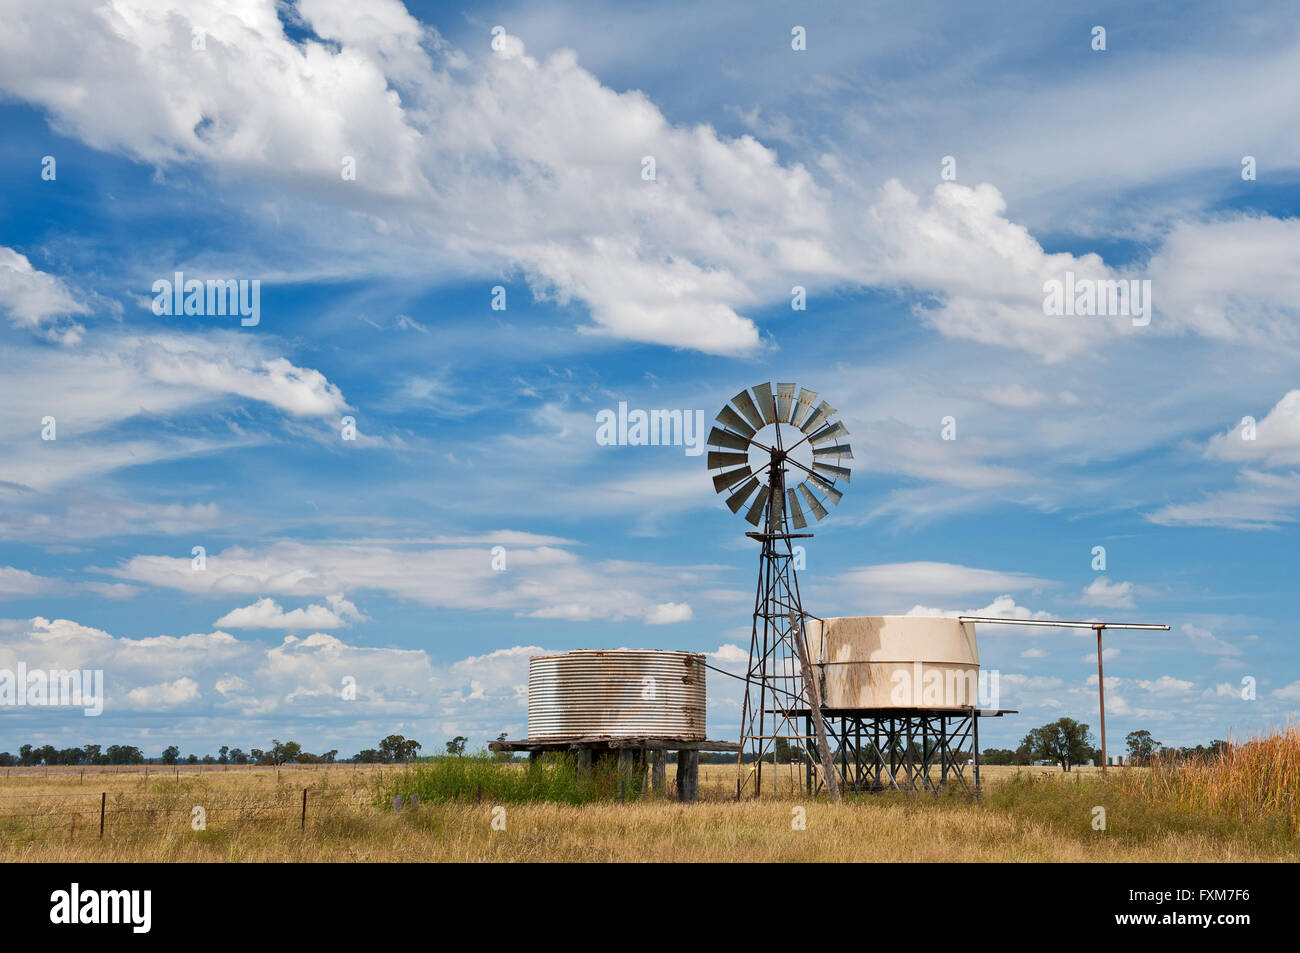 Windmill in Australia's Outback. - Stock Image